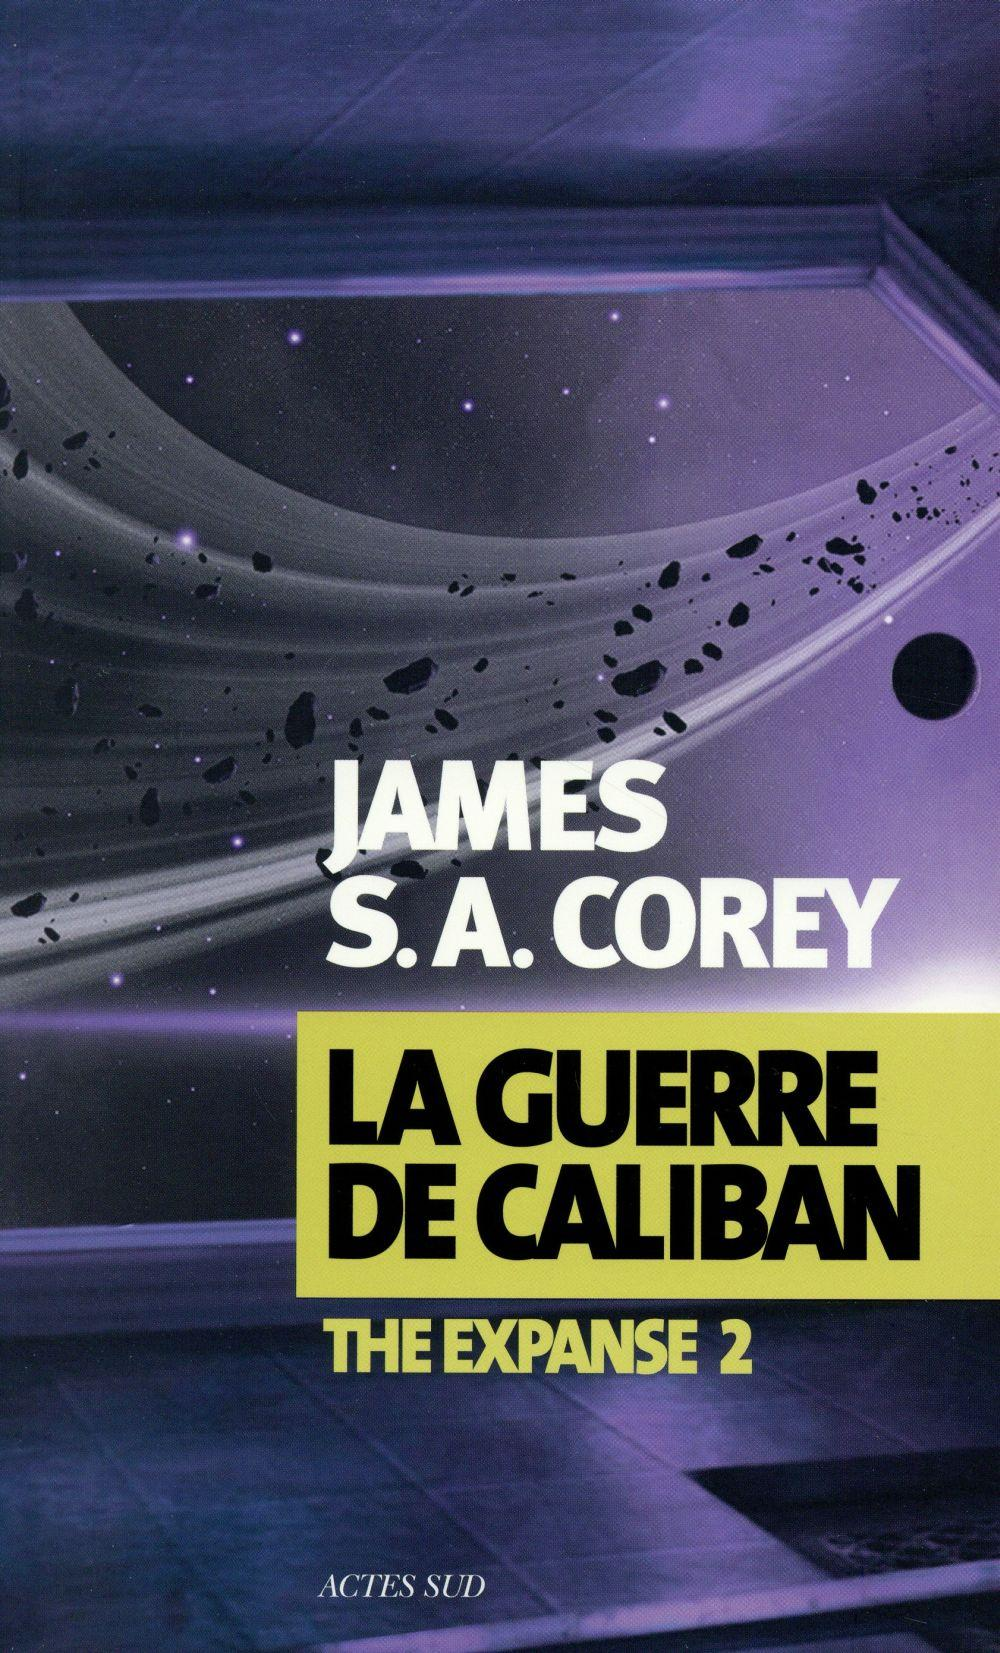 Vente Livre :                                    The expanse T.2 ; la guerre de Caliban                                      - James S. A. Corey